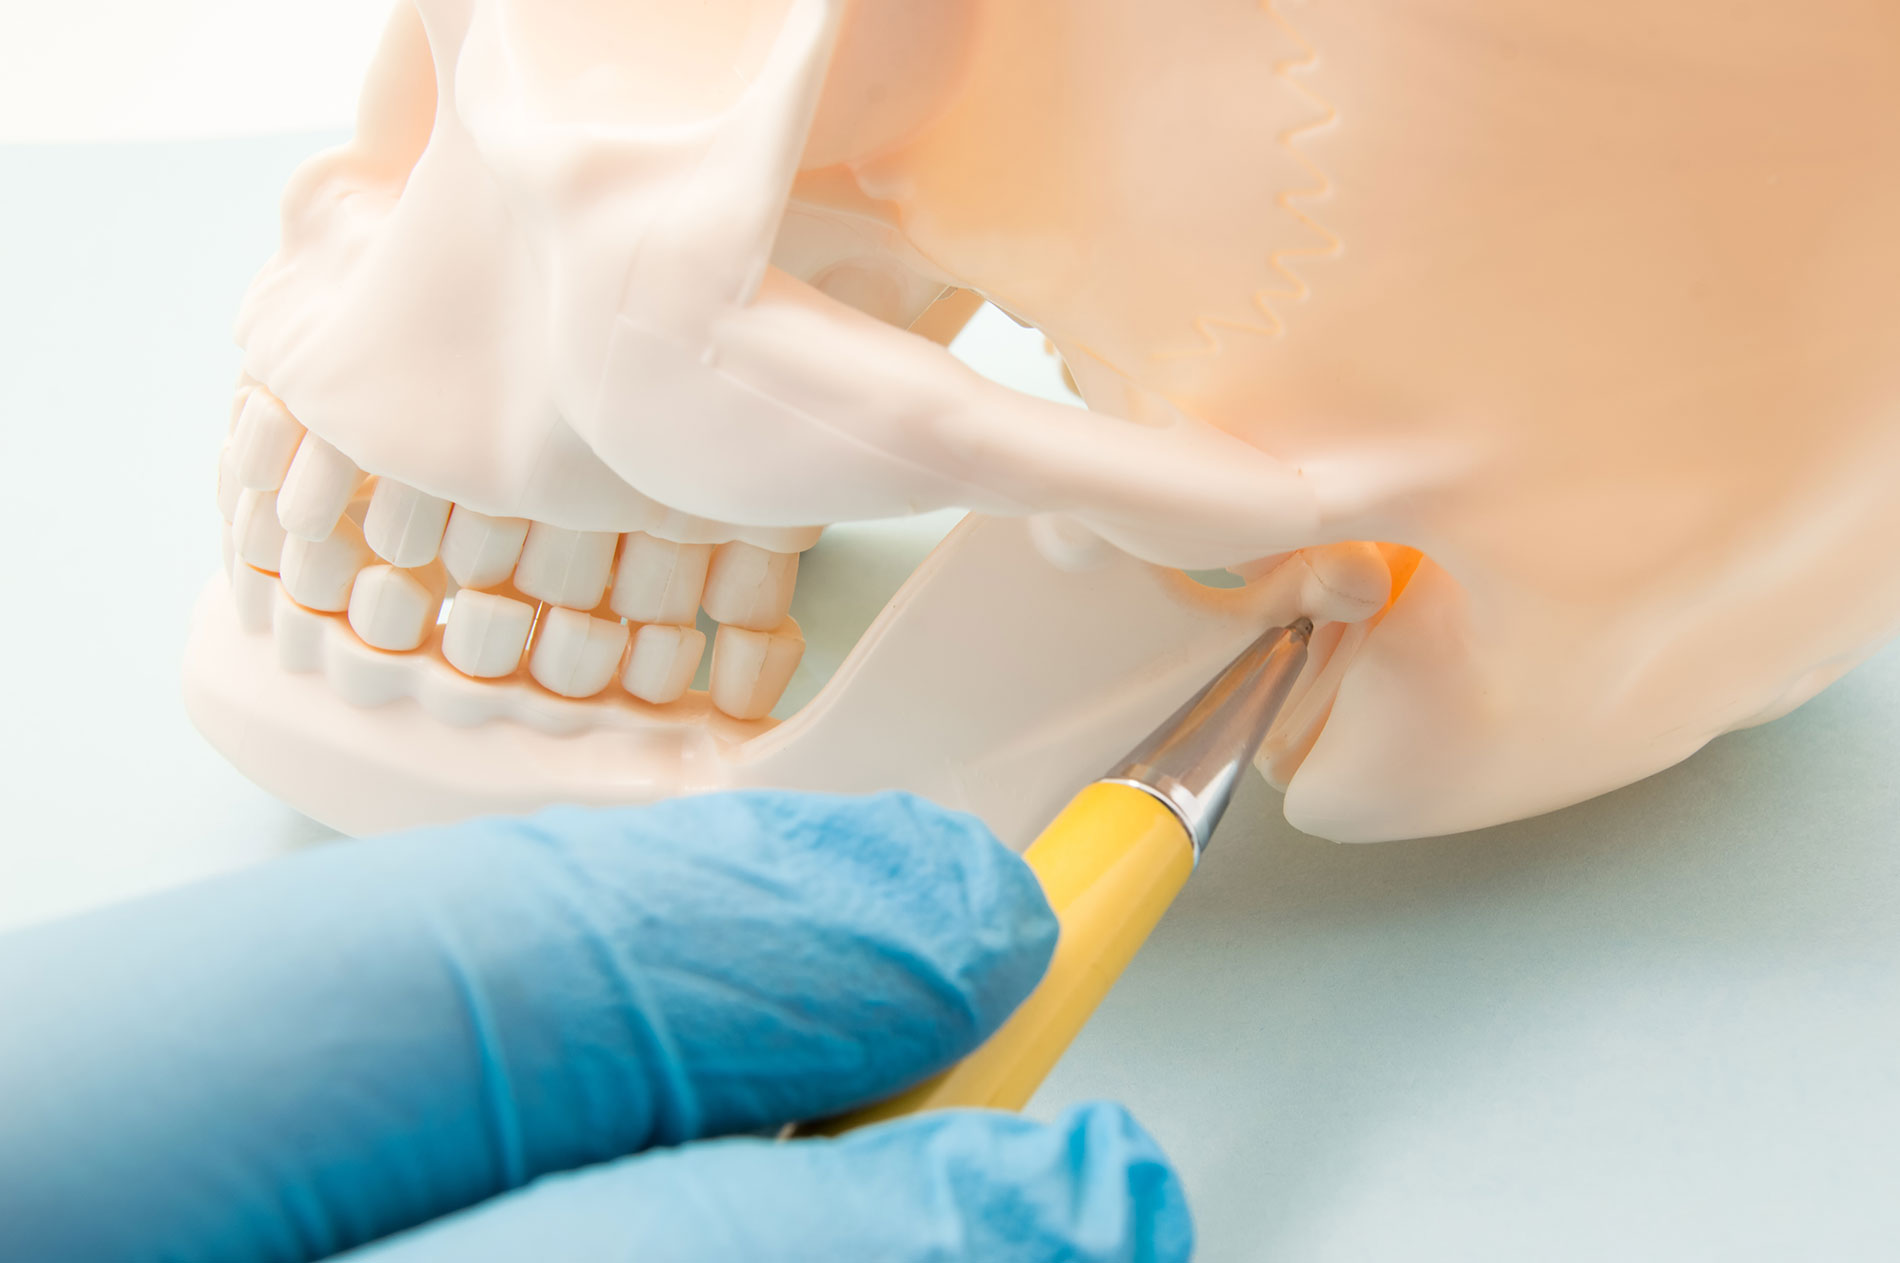 Temporomandibular joint (TMJ, joint of the lower jaw) and the ear canal